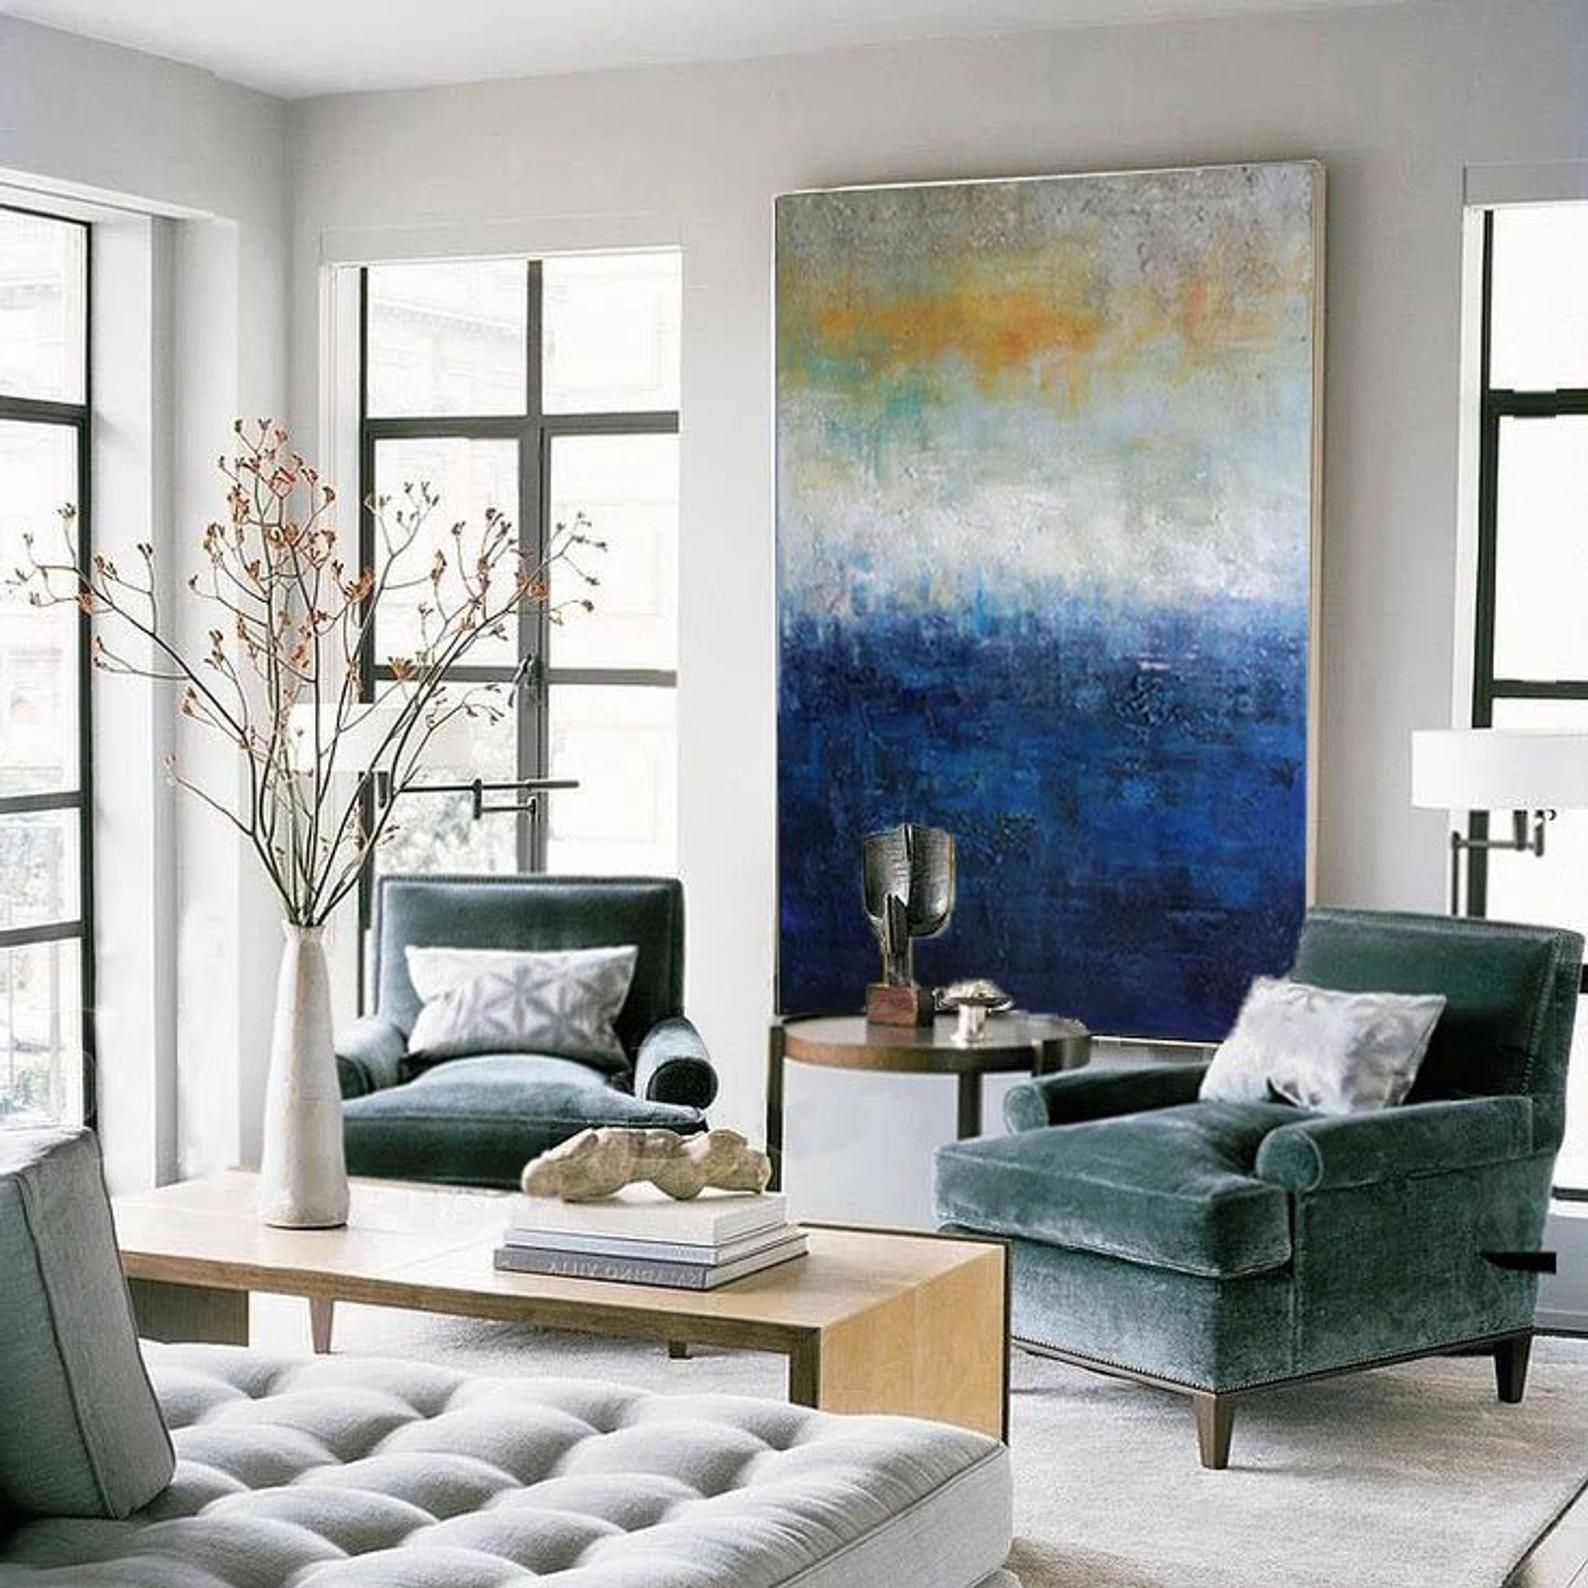 45++ Large canvas art for living room ireland ideas